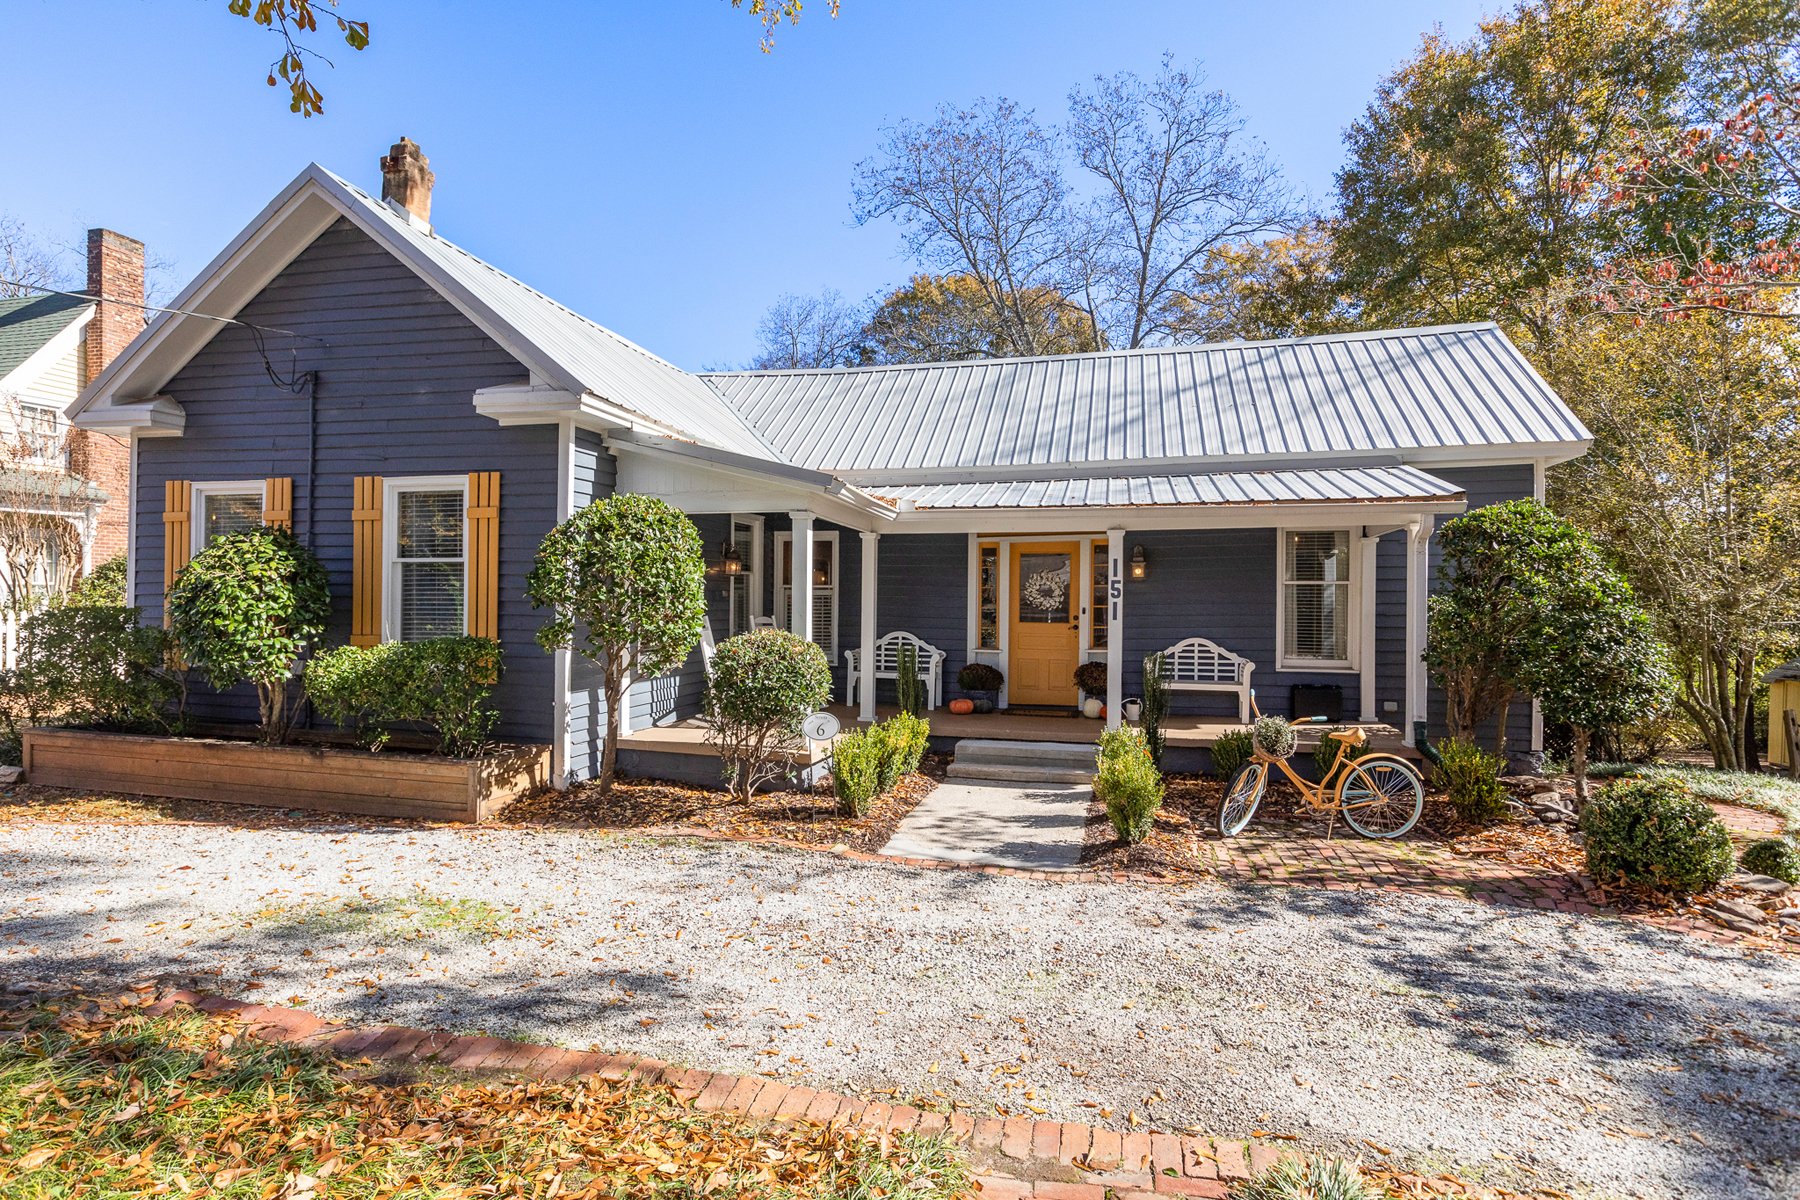 Single Family Homes for Active at Charming Historic Home in Downtown Senoia 151 Main Street Senoia, Georgia 30276 United States